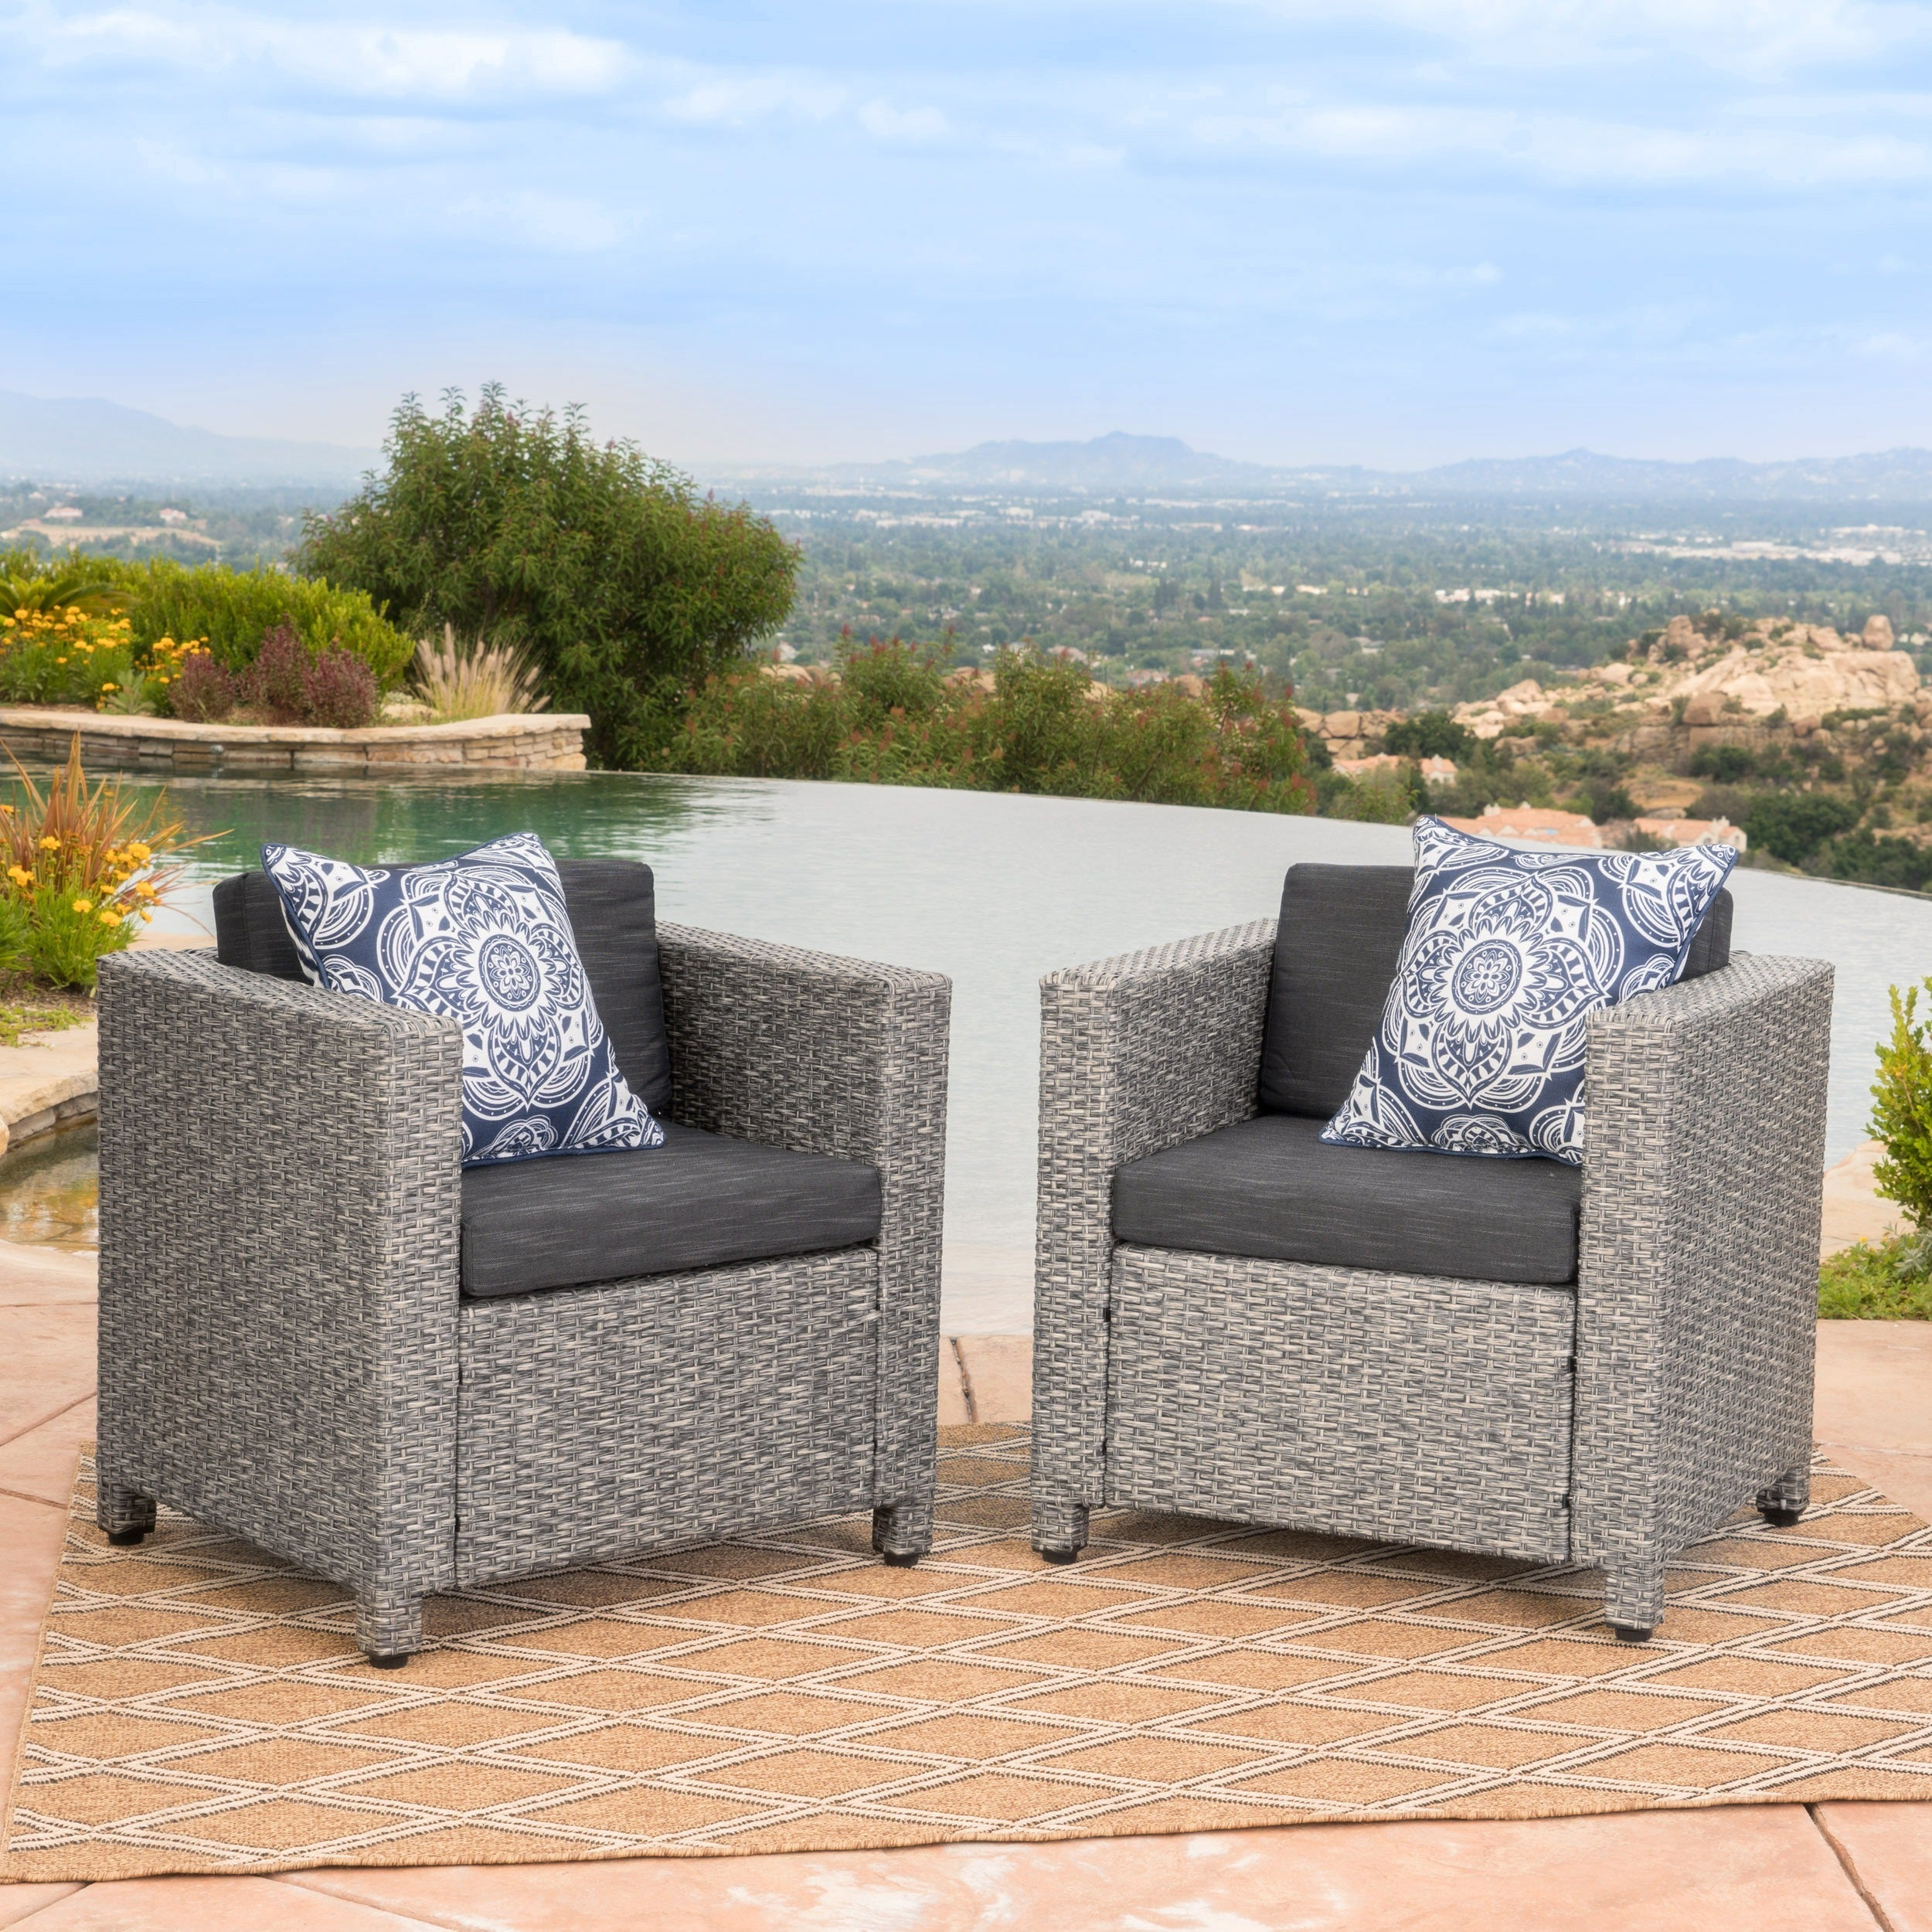 Shop Puerta Outdoor Wicker Club Chair With Cushions (Set Of 2) By  Christopher Knight Home   On Sale   Free Shipping Today   Overstock.com    15631272